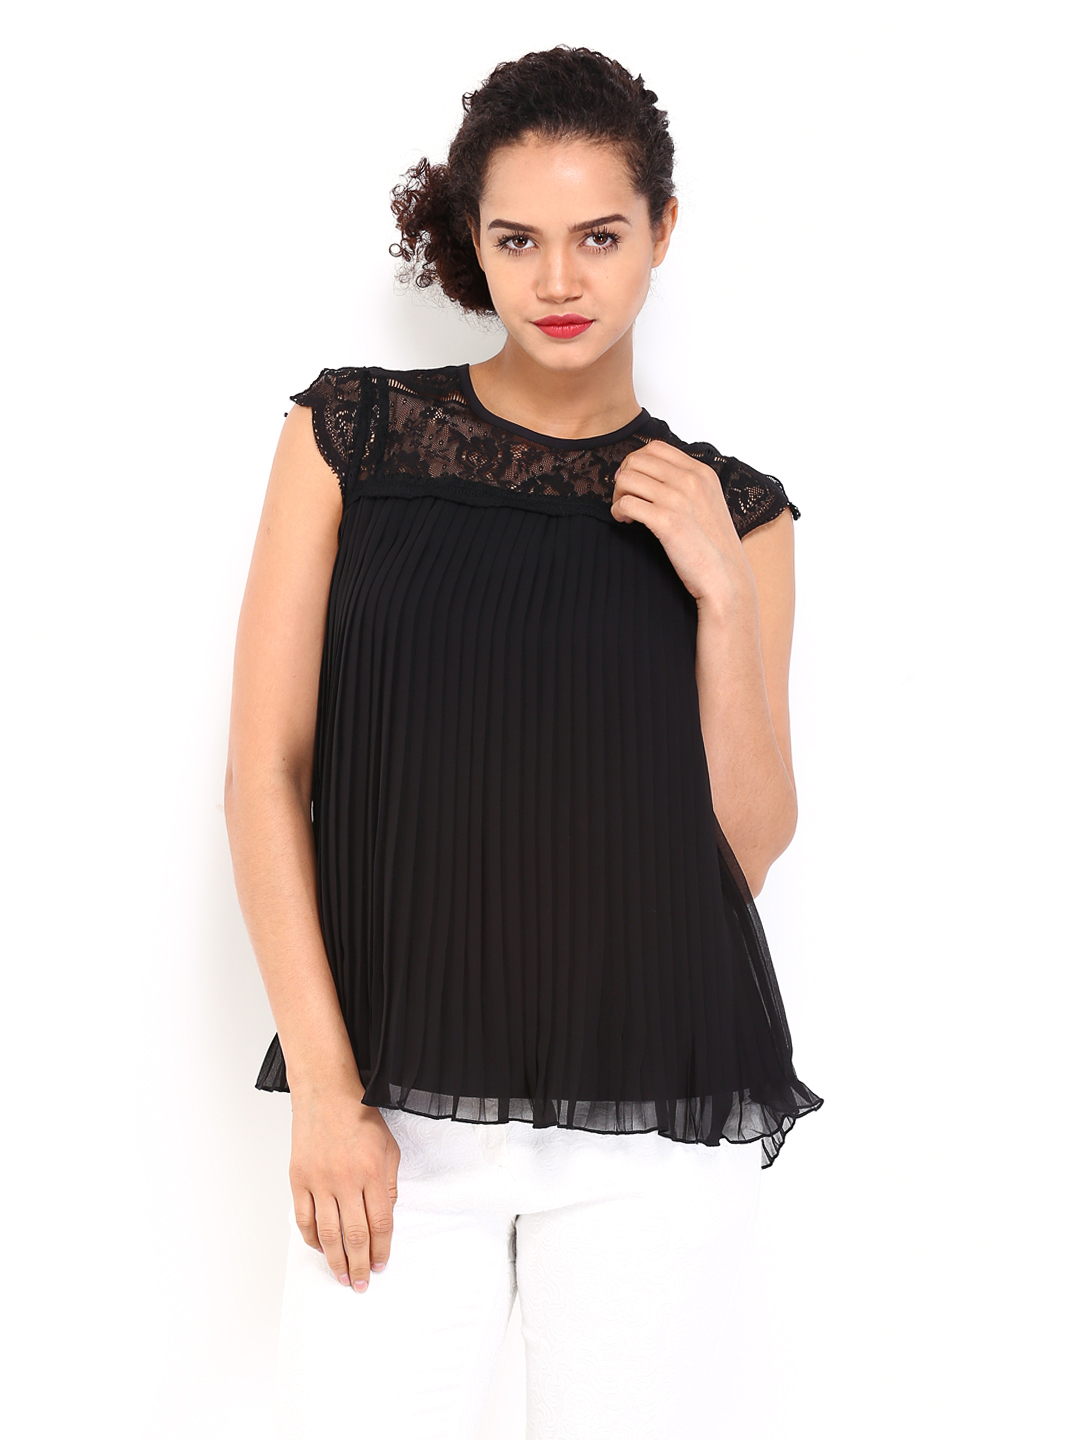 Myntra Vero Moda Women Black Formal Top 417008 | Buy Myntra Vero Moda Tops At Best Price Online ...